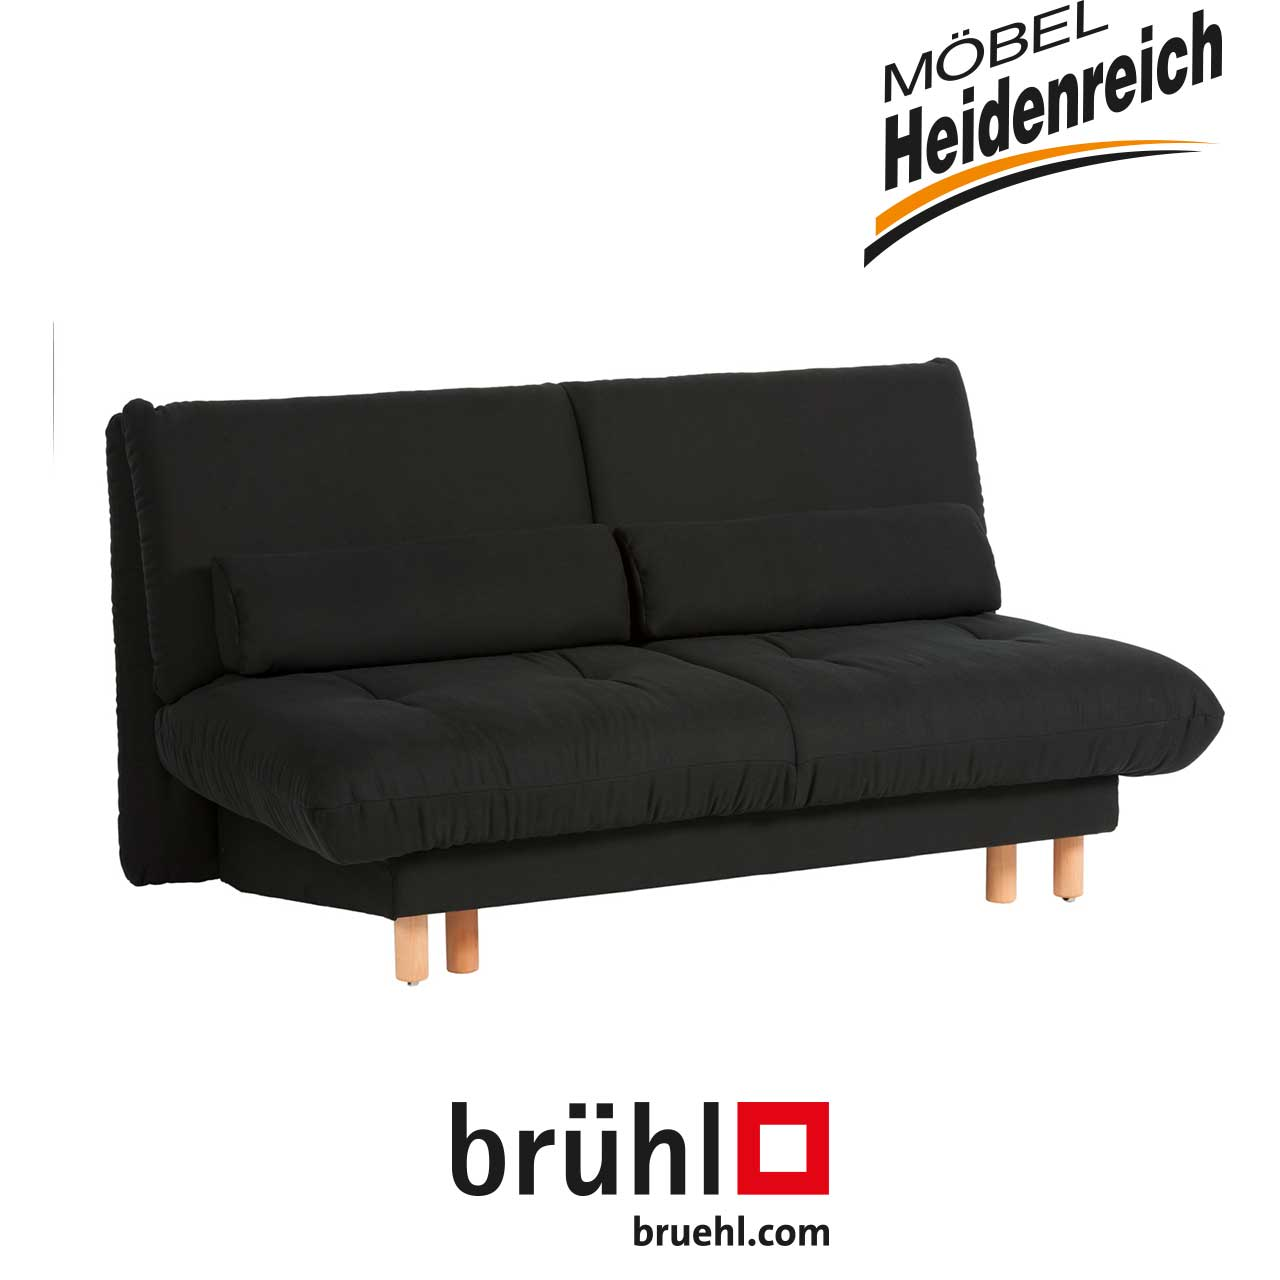 br hl bettsofa quint schwarz sofas garnituren sale m bel heidenreich. Black Bedroom Furniture Sets. Home Design Ideas